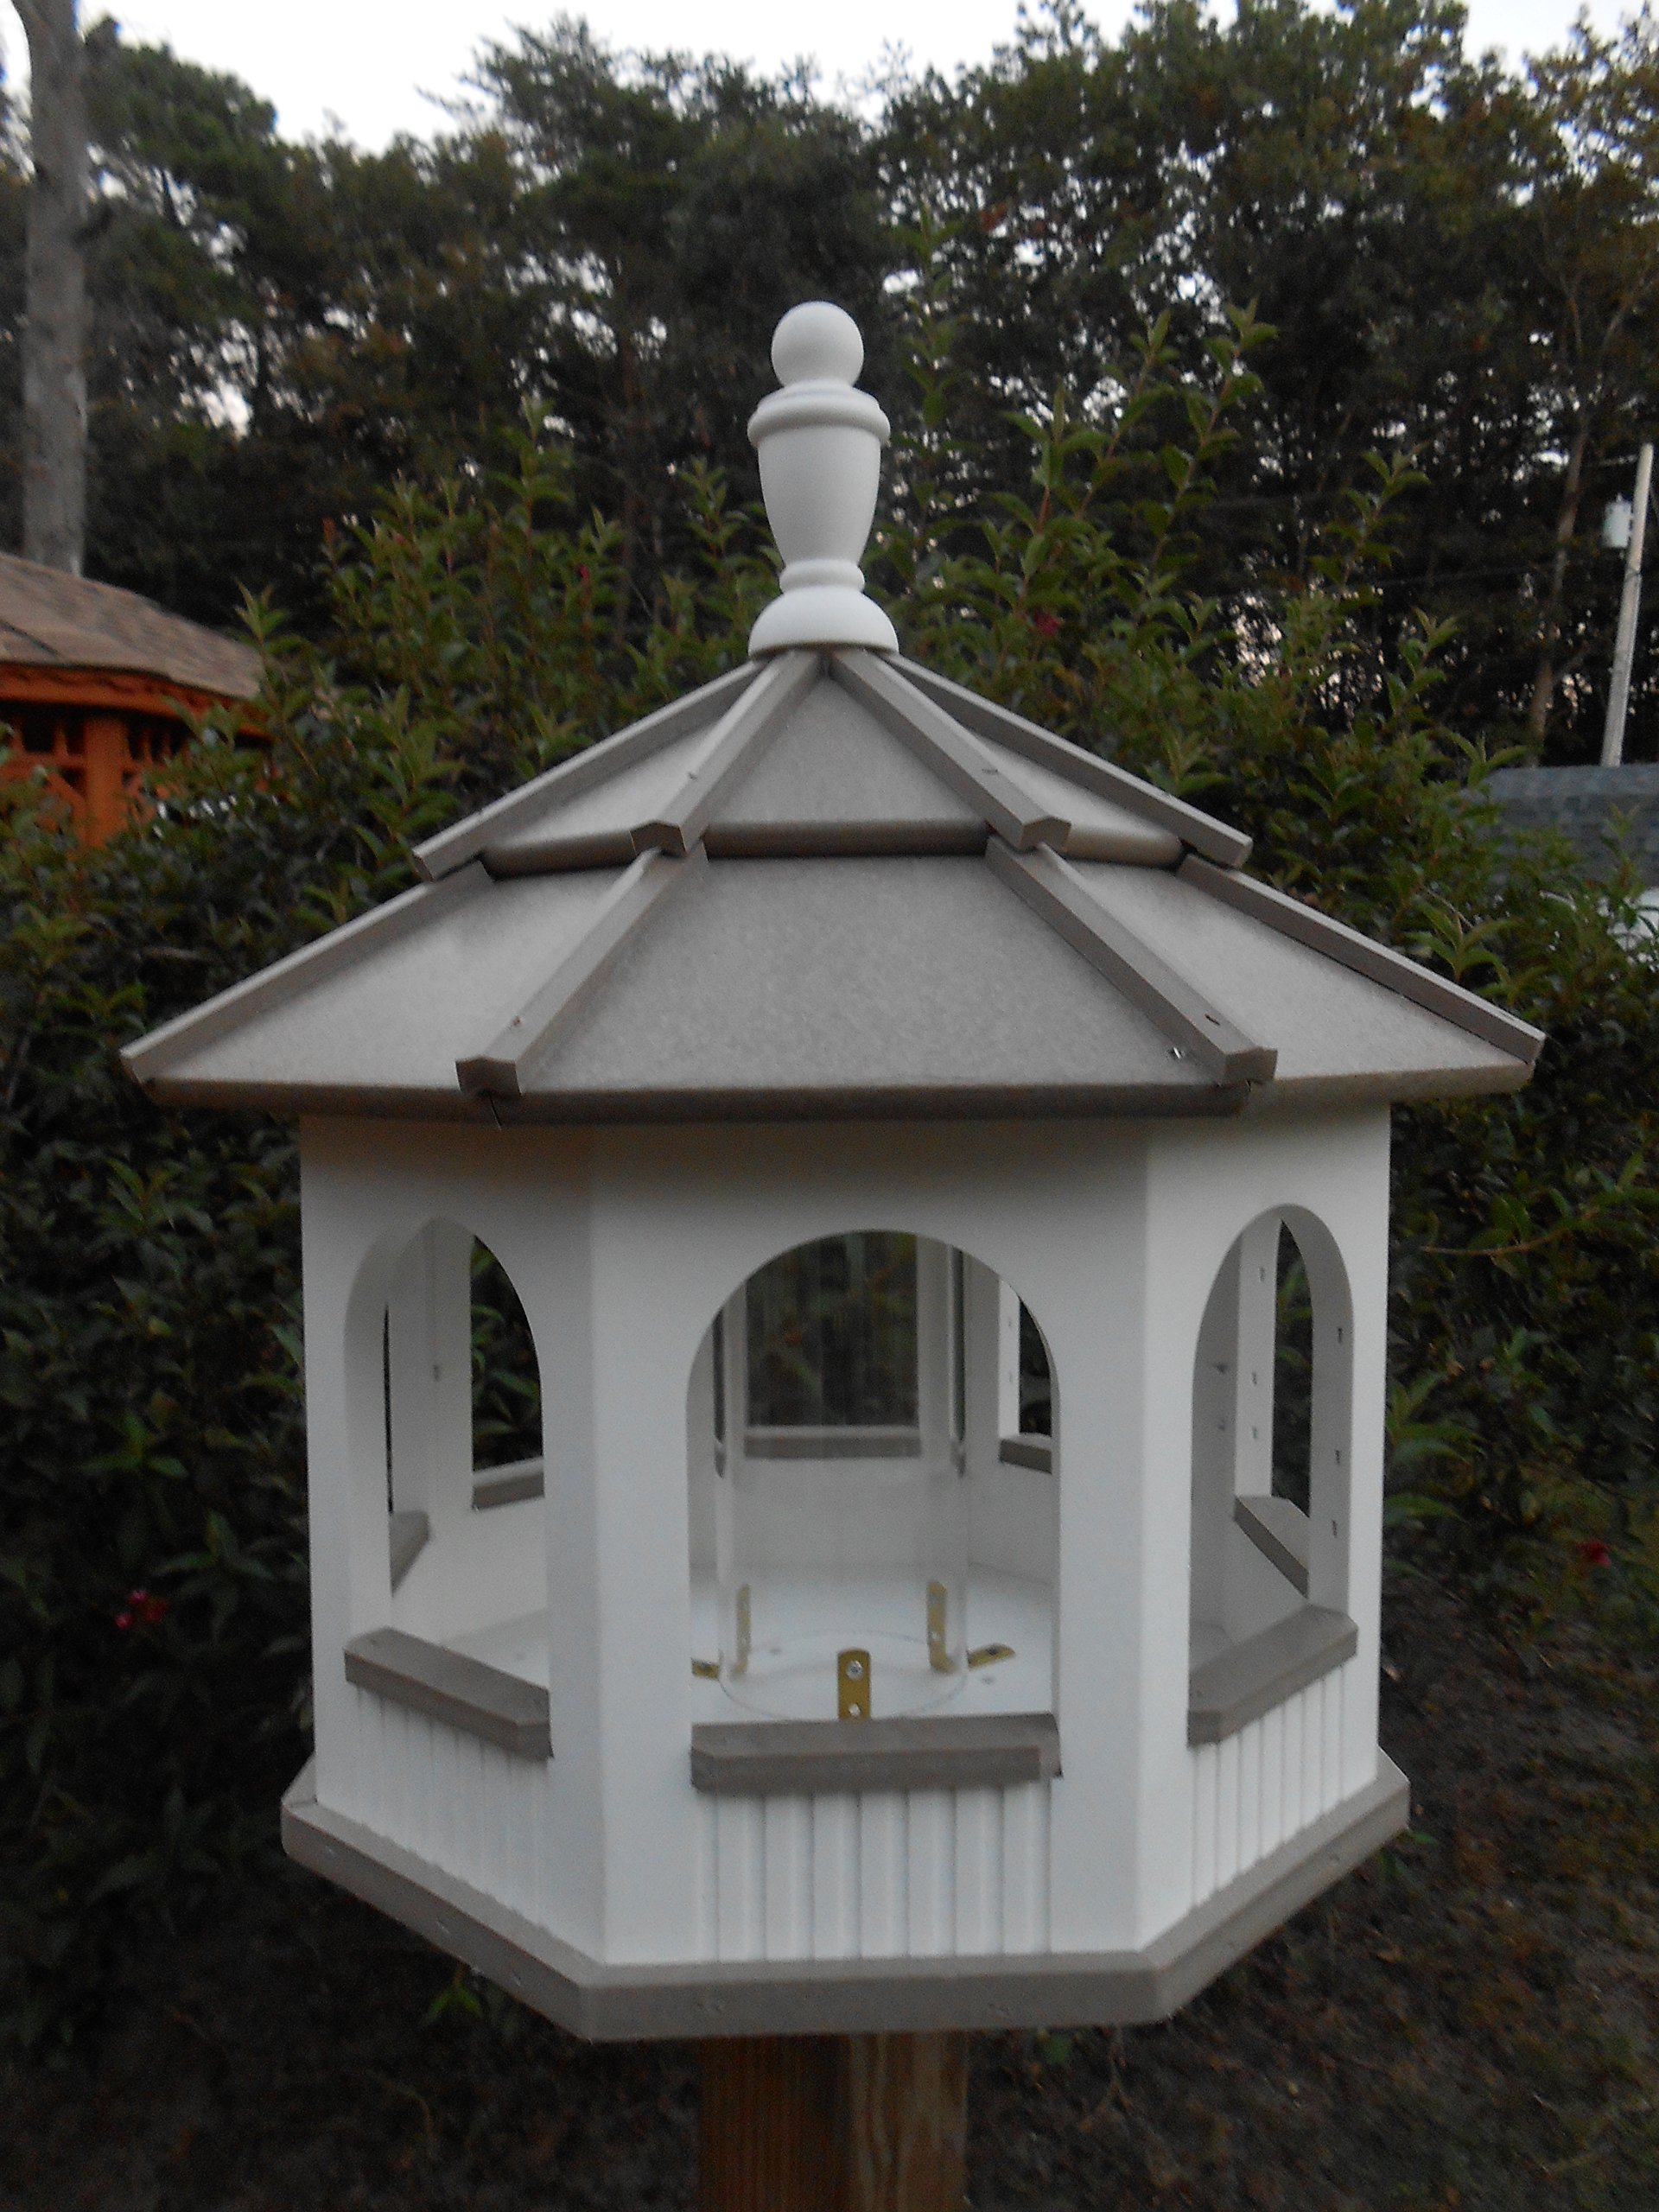 Large Gazebo Vinyl Bird Feeder Amish Homemade Handmade Handcrafted White & Clay by Amish Crafted